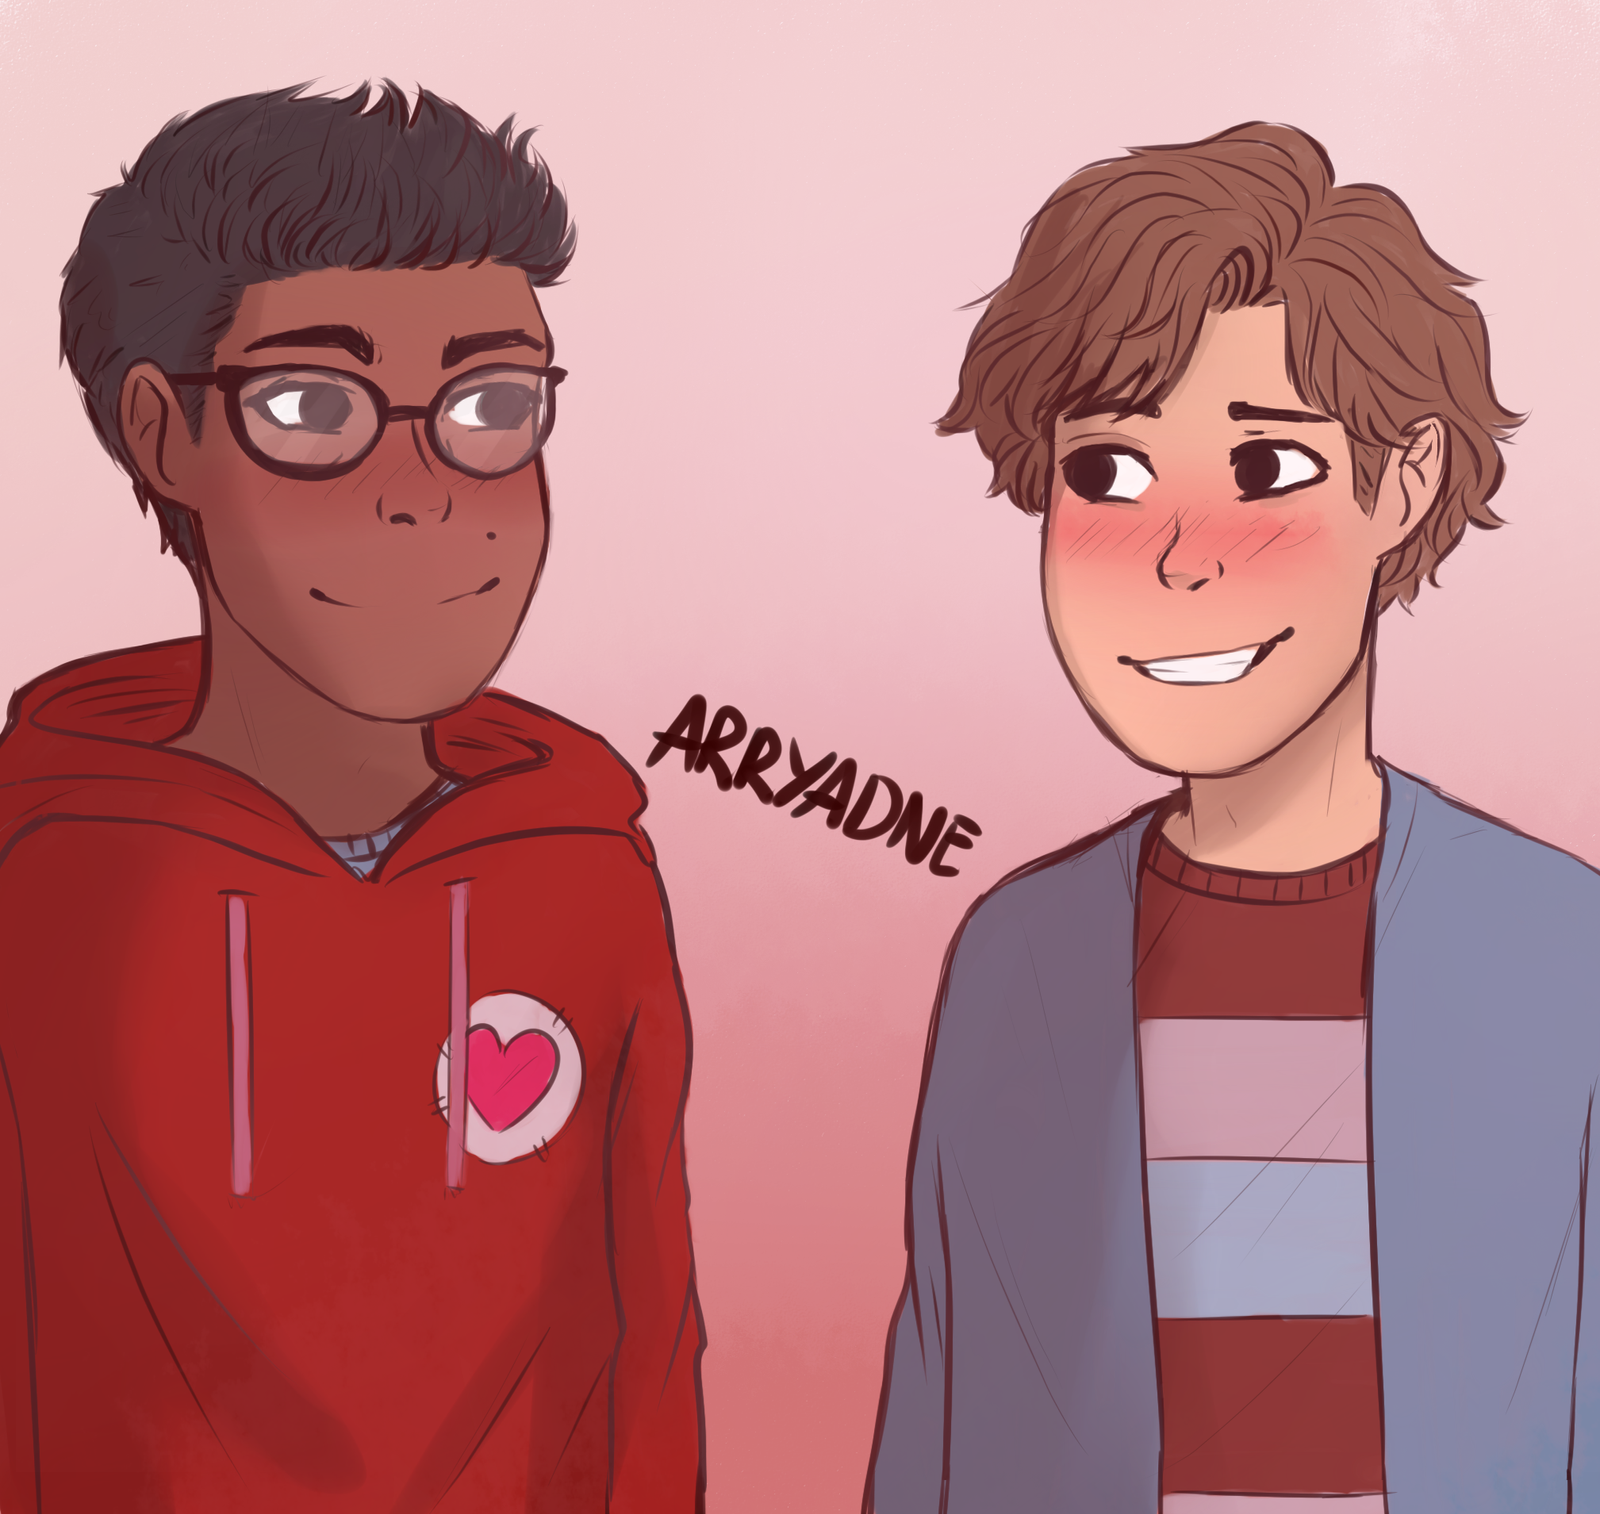 A doodle of boyf riends from Be More Chill by Arryadne